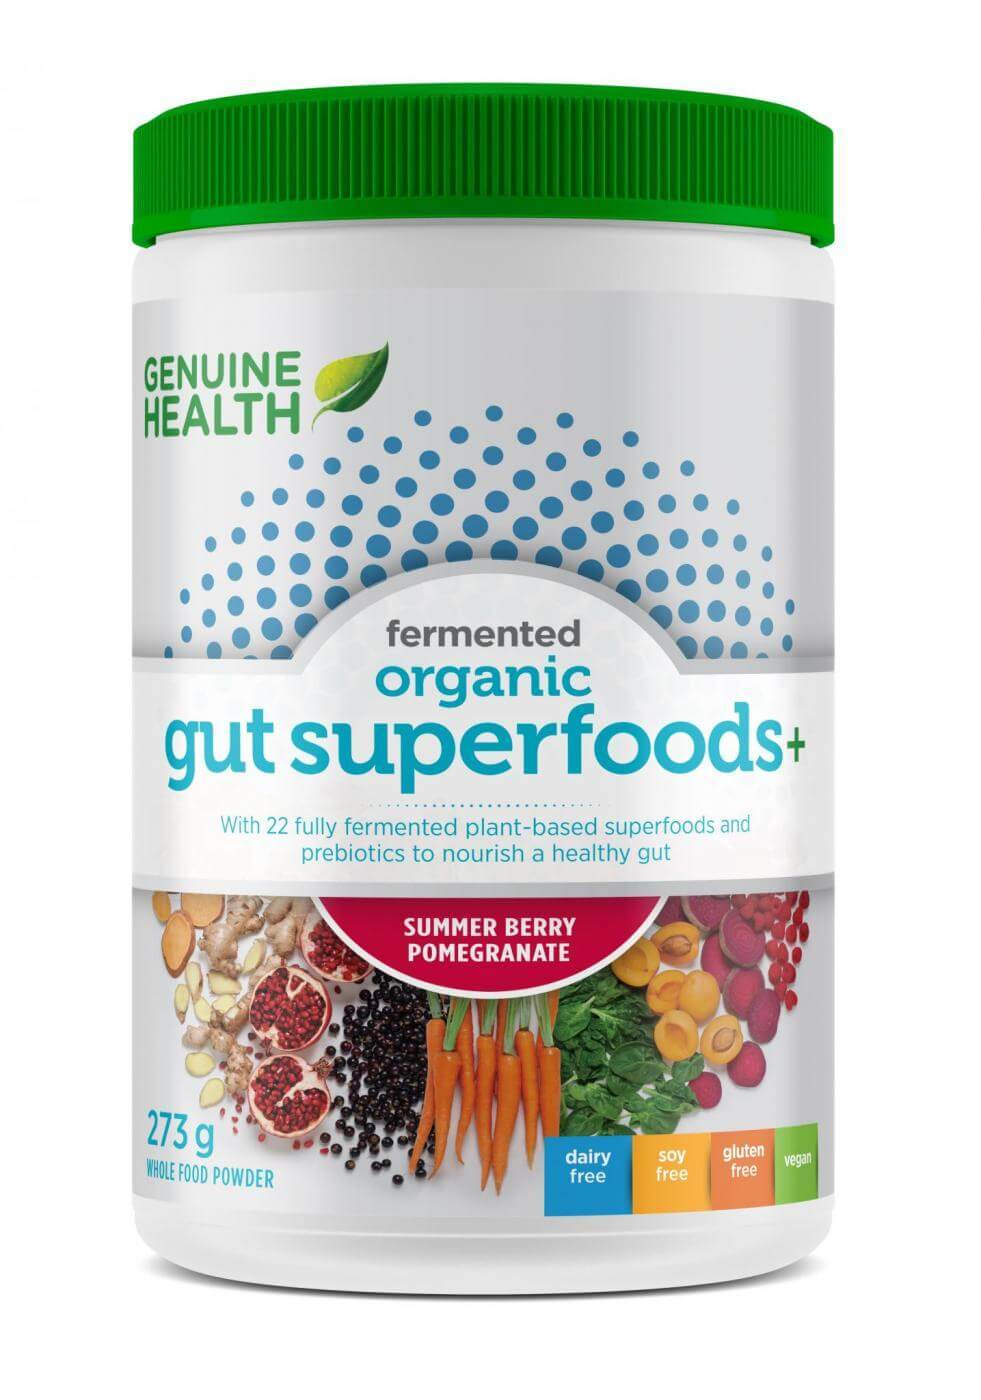 Supplements & Vitamins - Genuine Health - Fermented Gut Superfoods+, Summer Berry Pomegranate, 273g